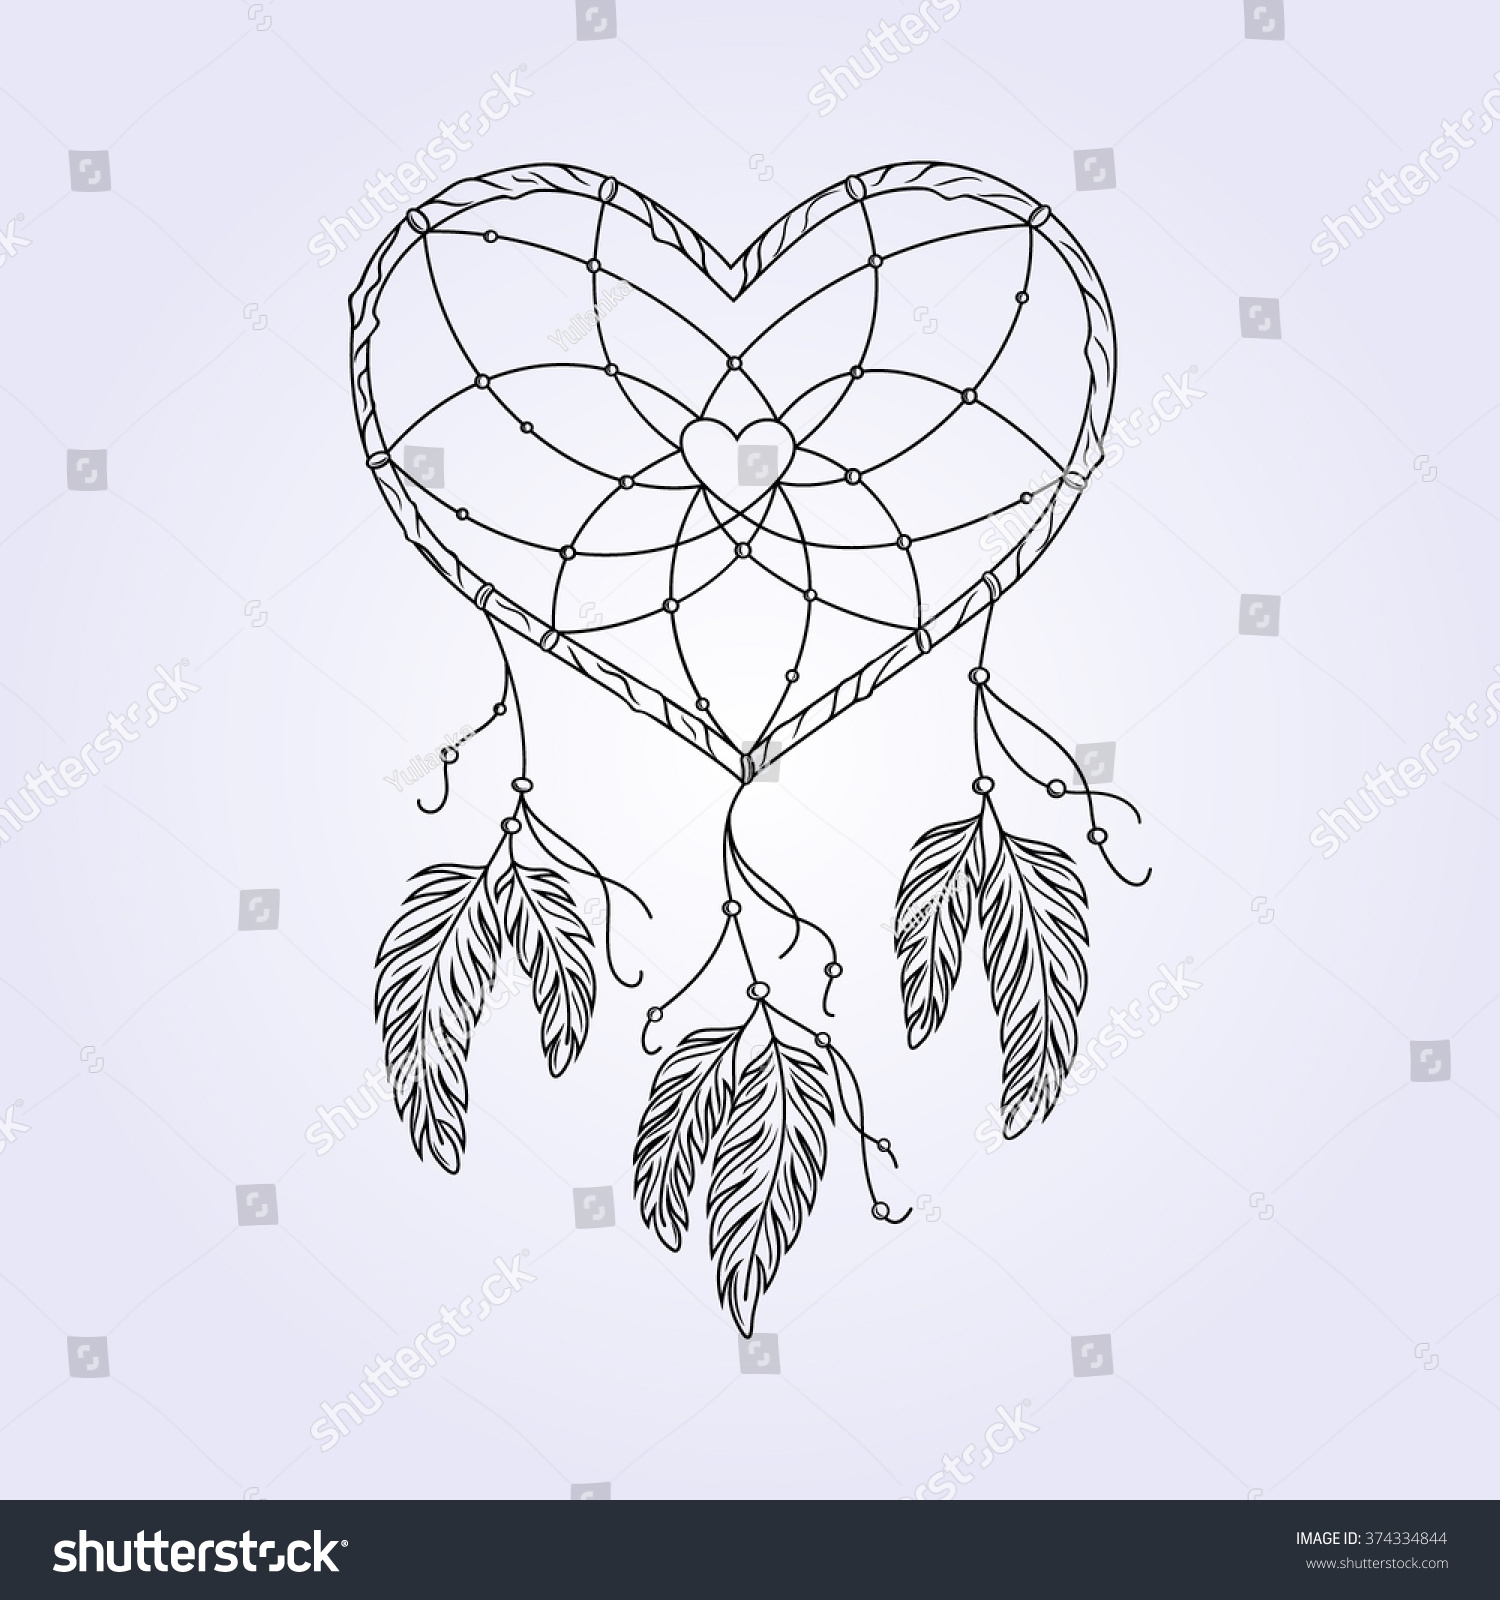 Heart Shaped Dreamcatcher Drawing